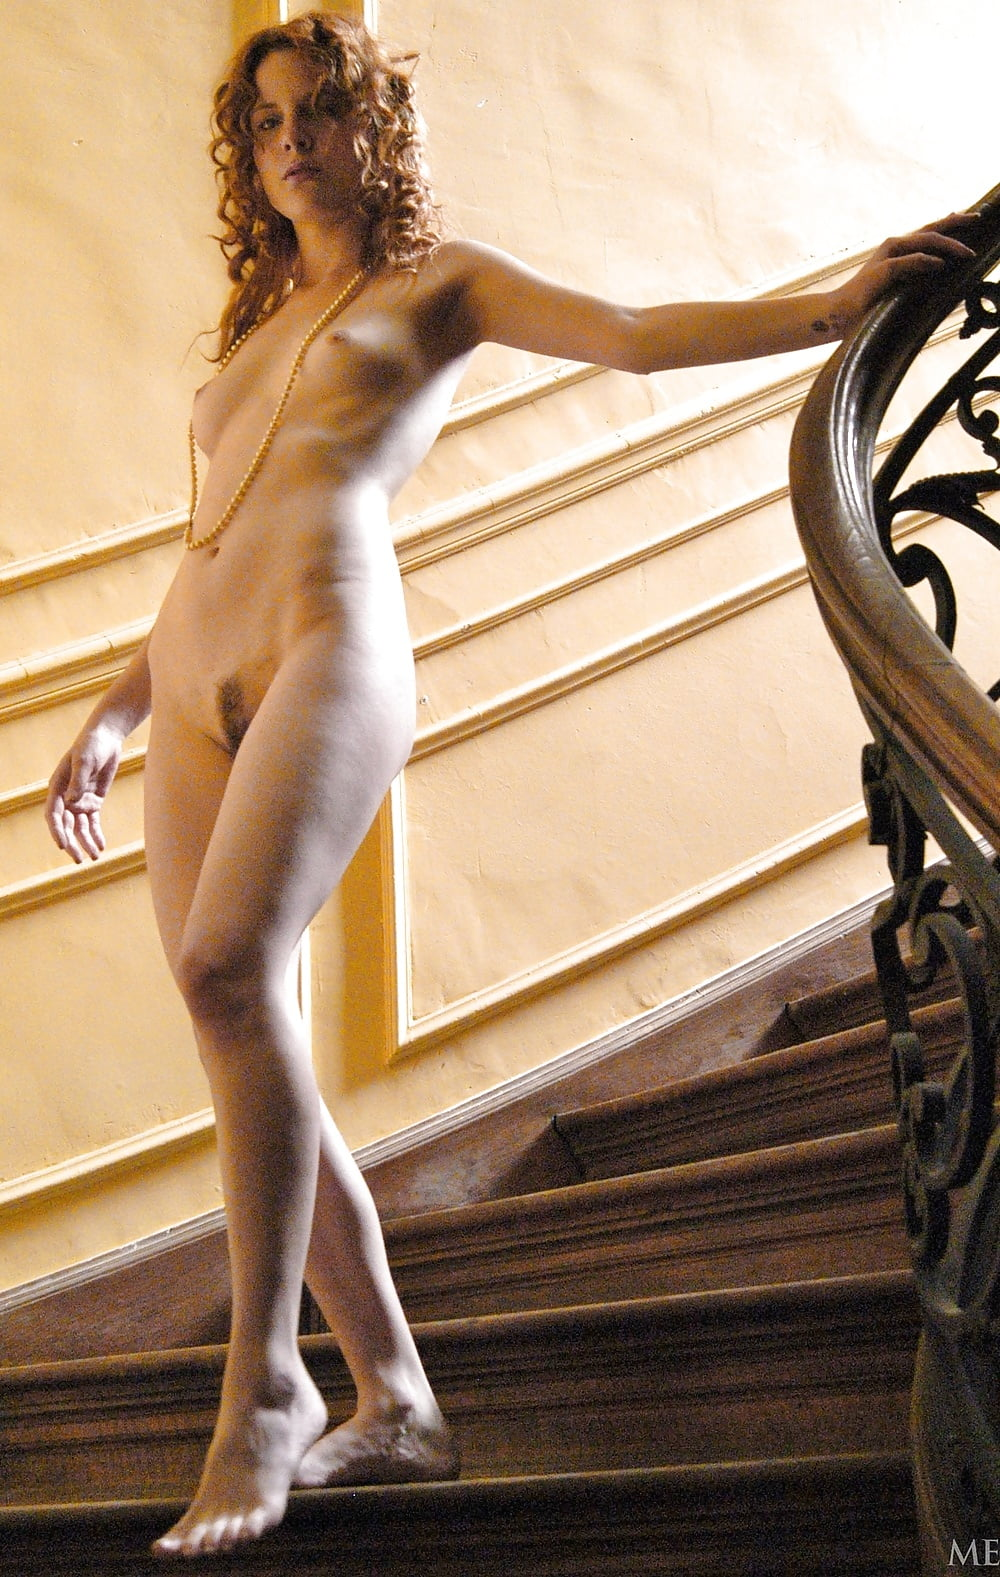 Seren gibson danni wells nude in loaded magazine mq scans nudes (79 pic)